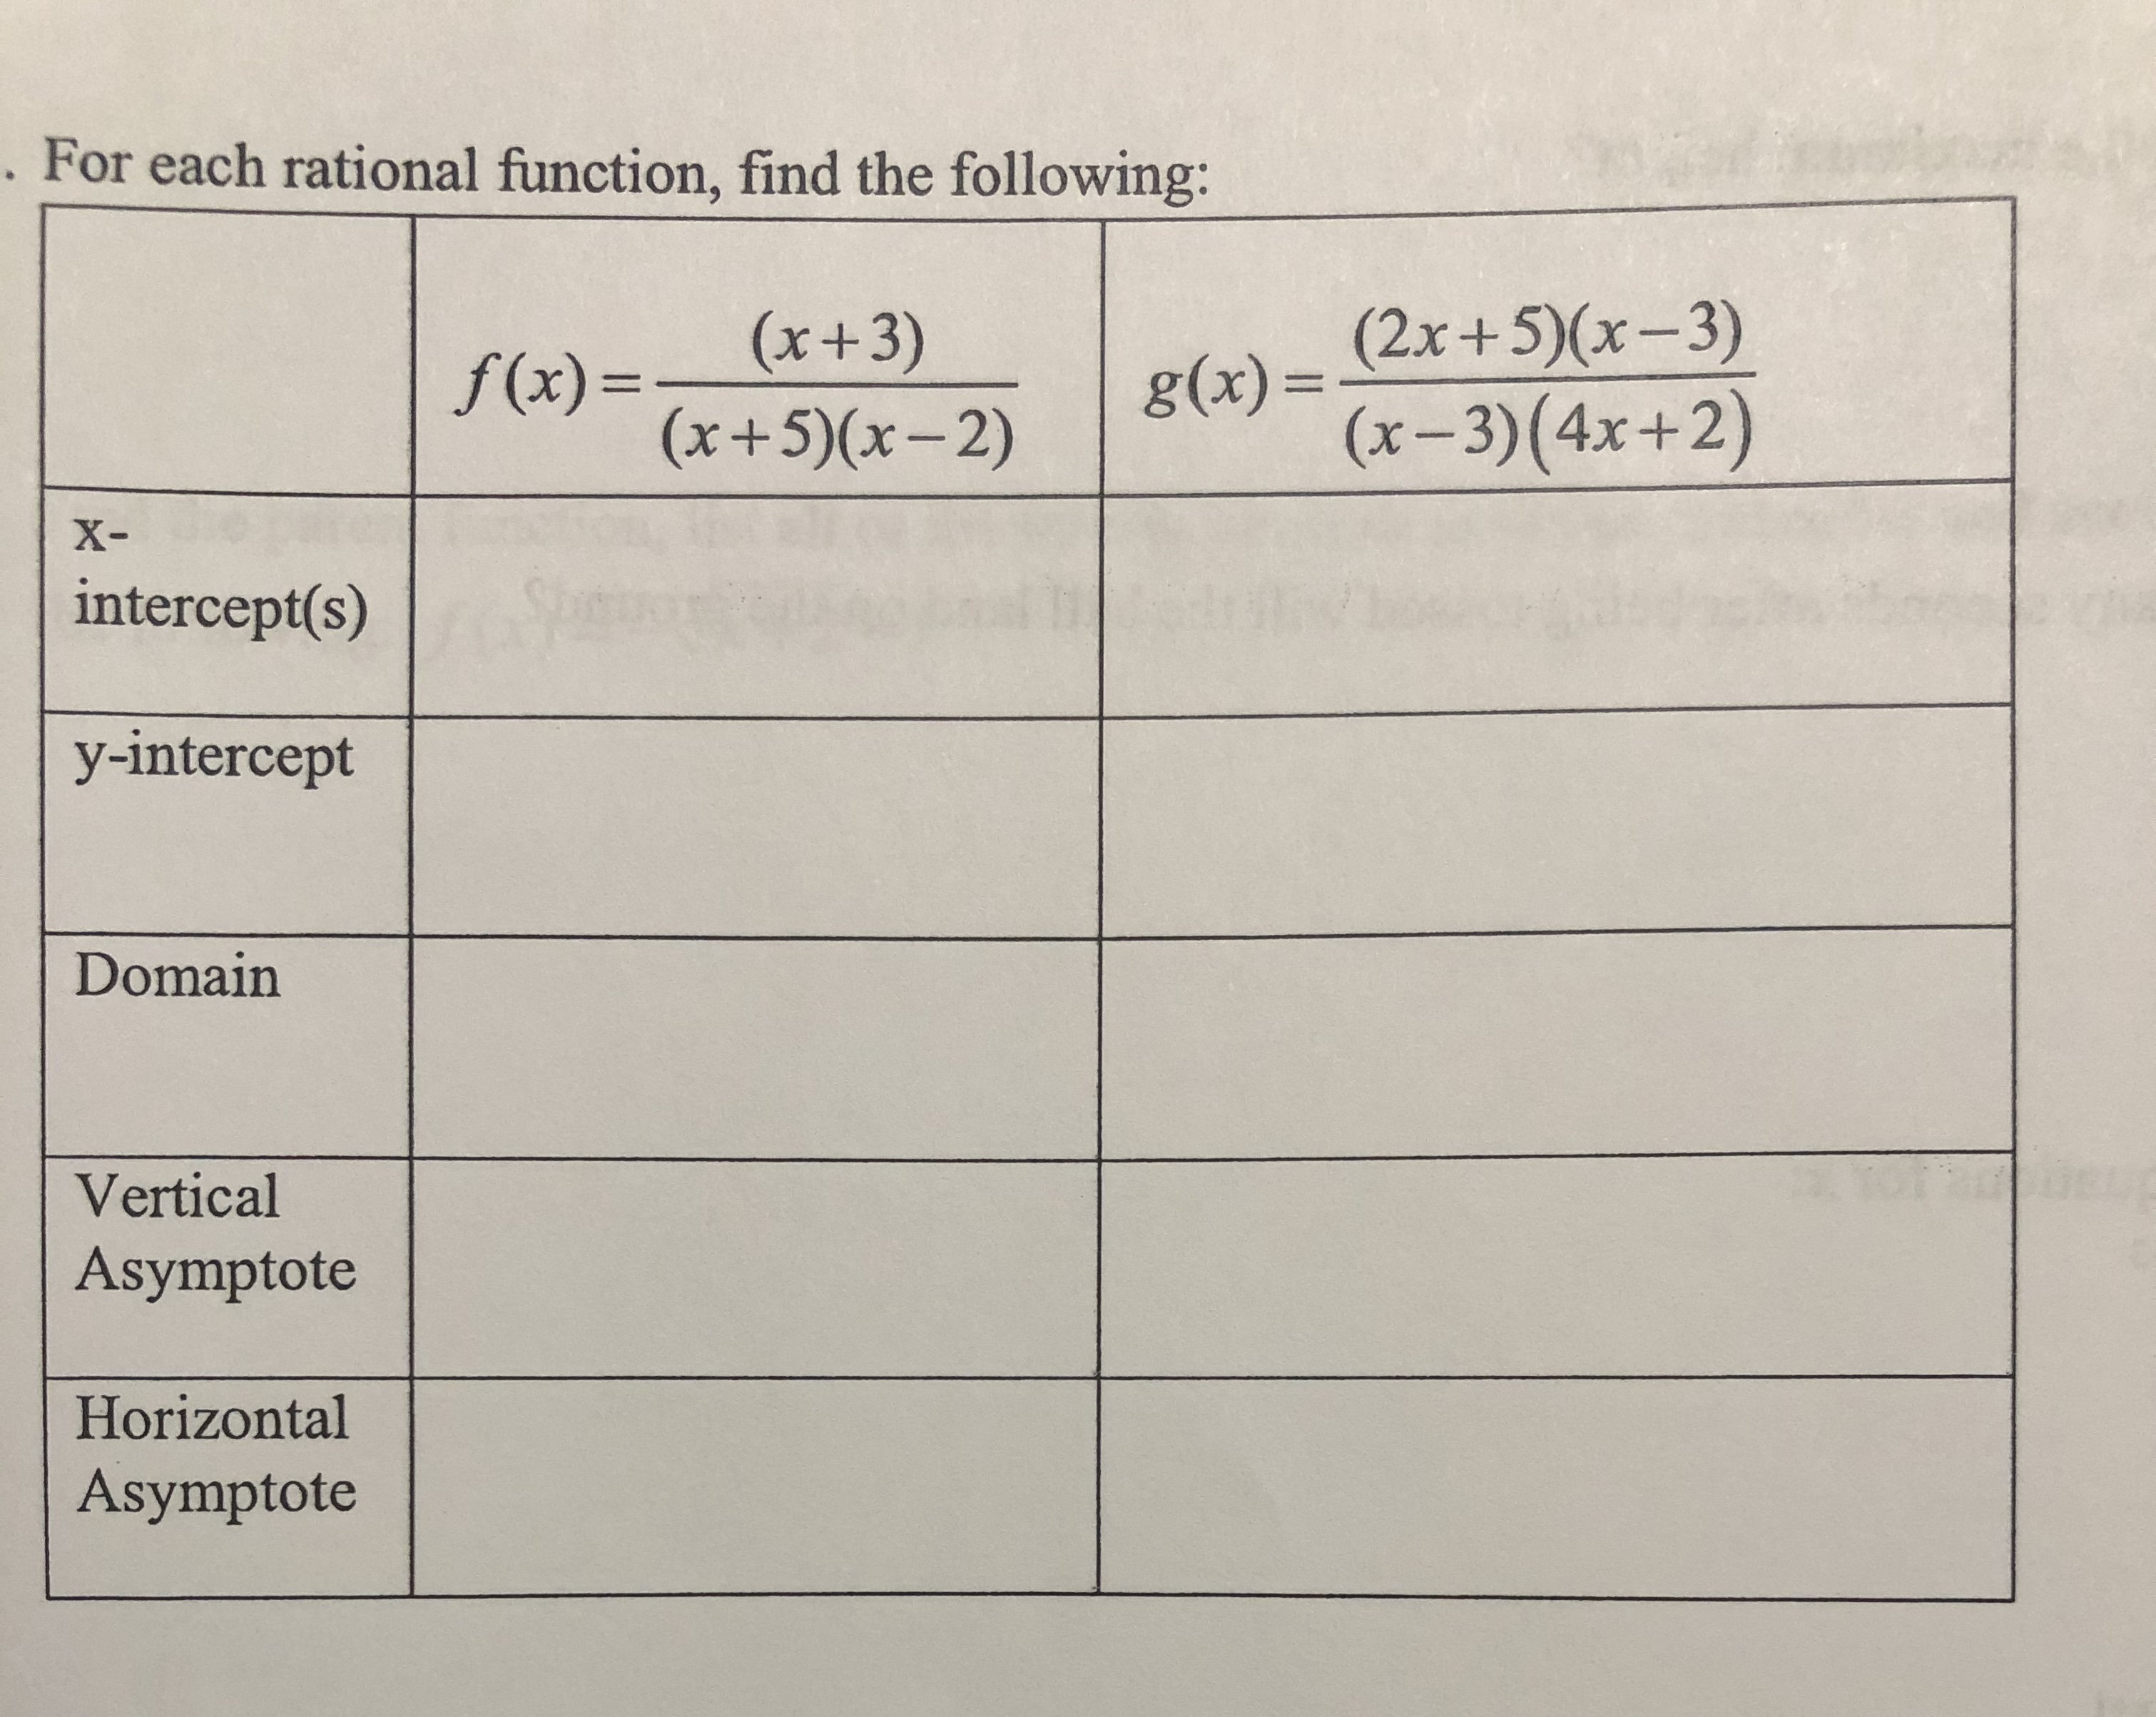 . For each rational function, find the following: (2x+5)(x-3) g(x)3= (x-3)(4x+2) (x+3) (x+5)(x-2) f(x) = %3D X- intercept(s) y-intercept Domain Vertical Asymptote Horizontal Asymptote